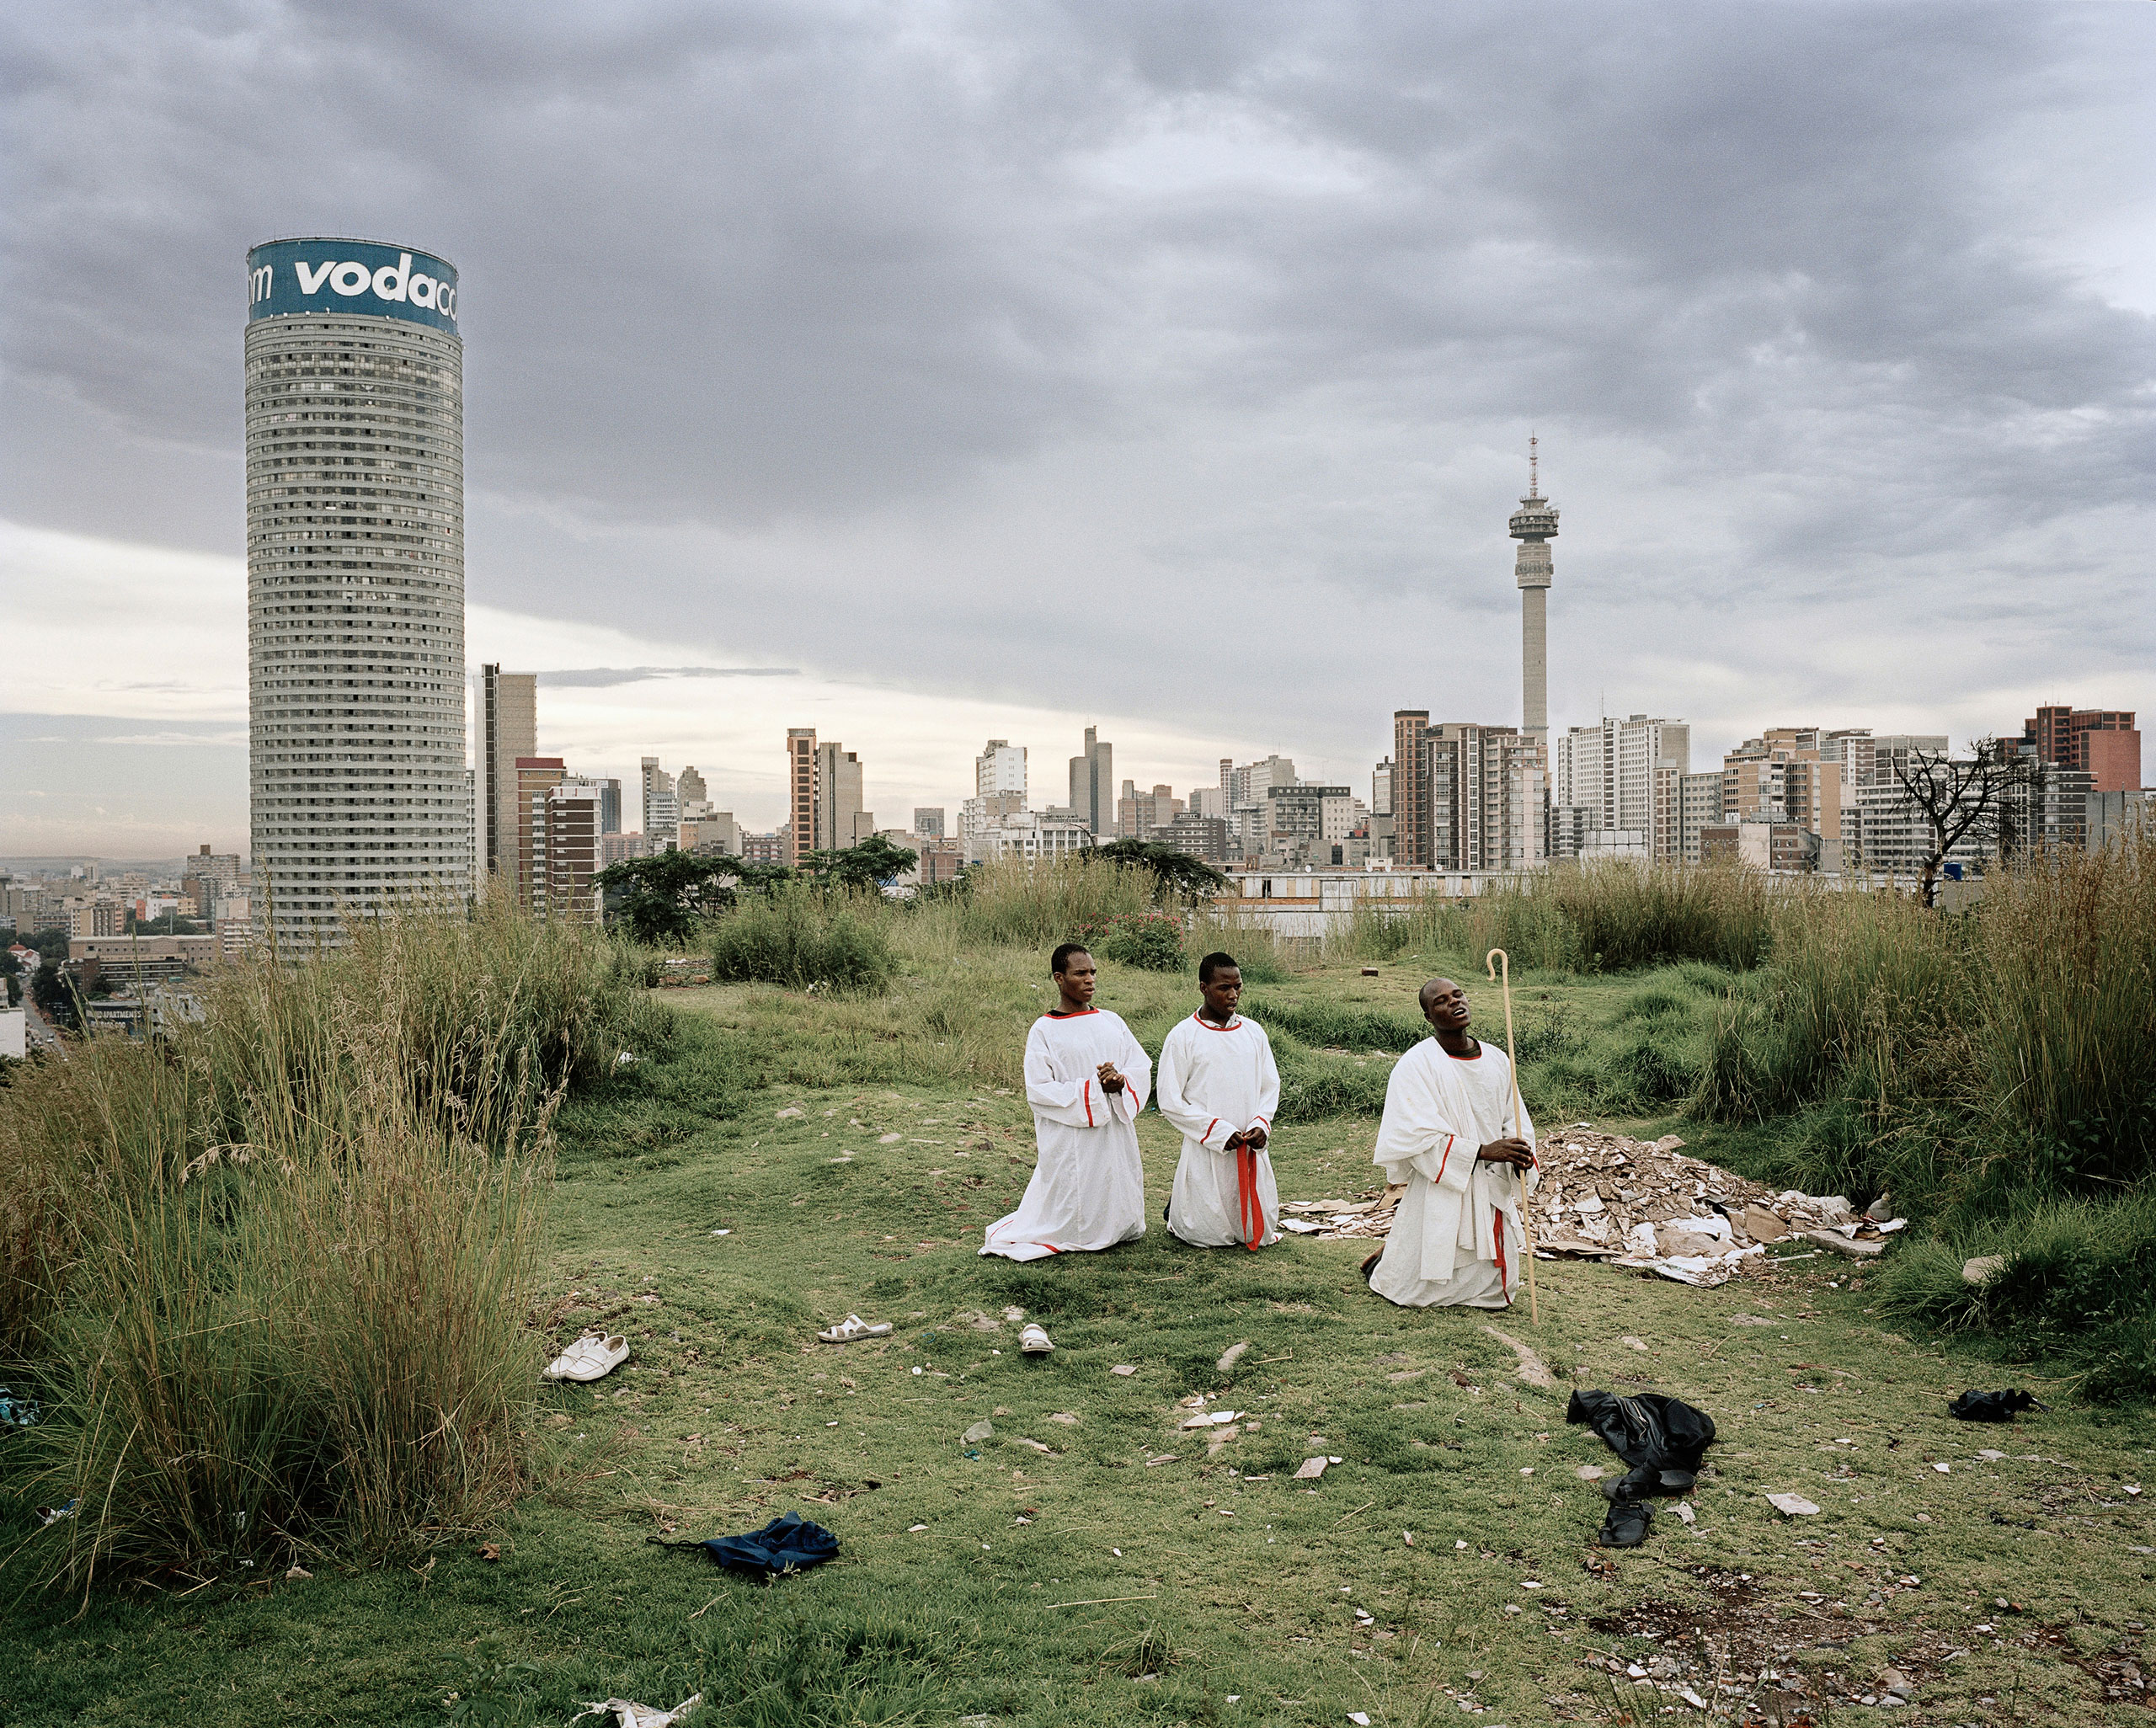 Ponte City from Yeoville Ridge, from the series Ponte City, 2008.